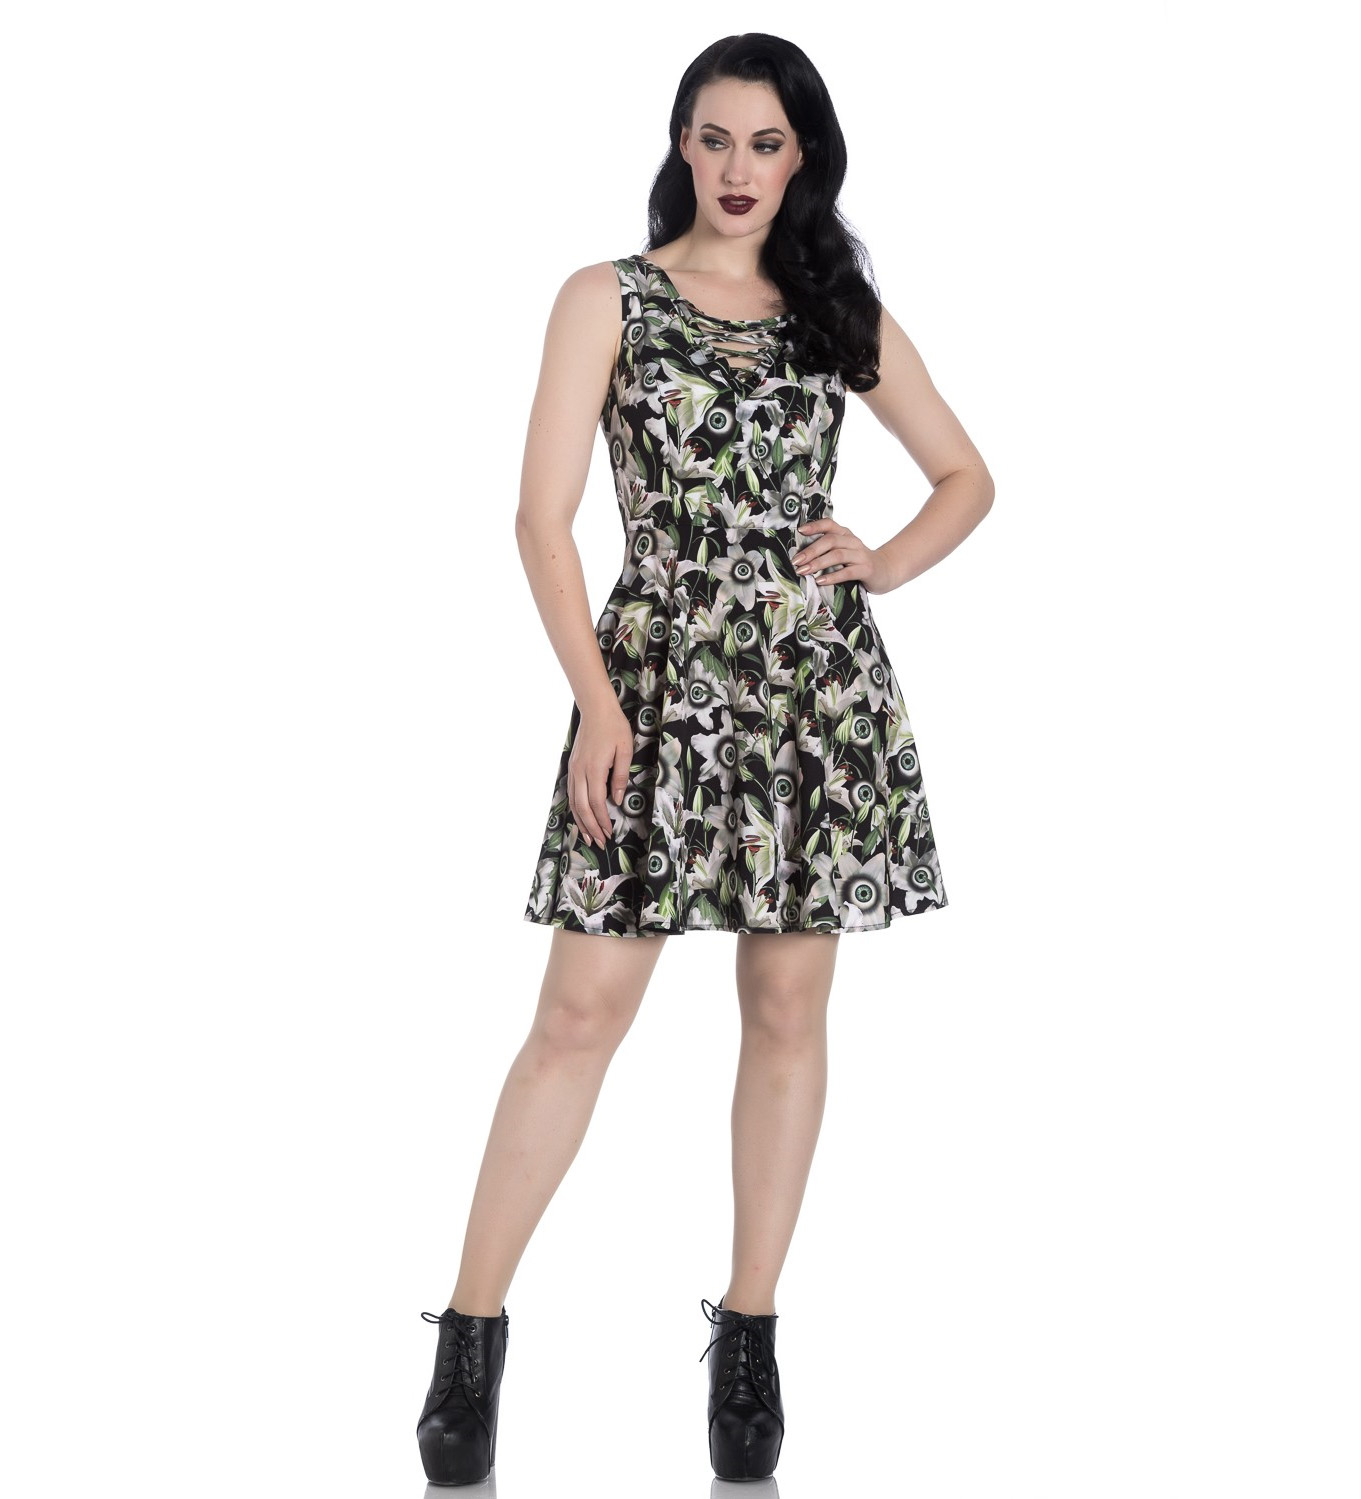 Hell-Bunny-Black-Lace-Up-Goth-Punk-Mini-Dress-PEEPERS-Eyeballs-Flowers-All-Sizes thumbnail 21